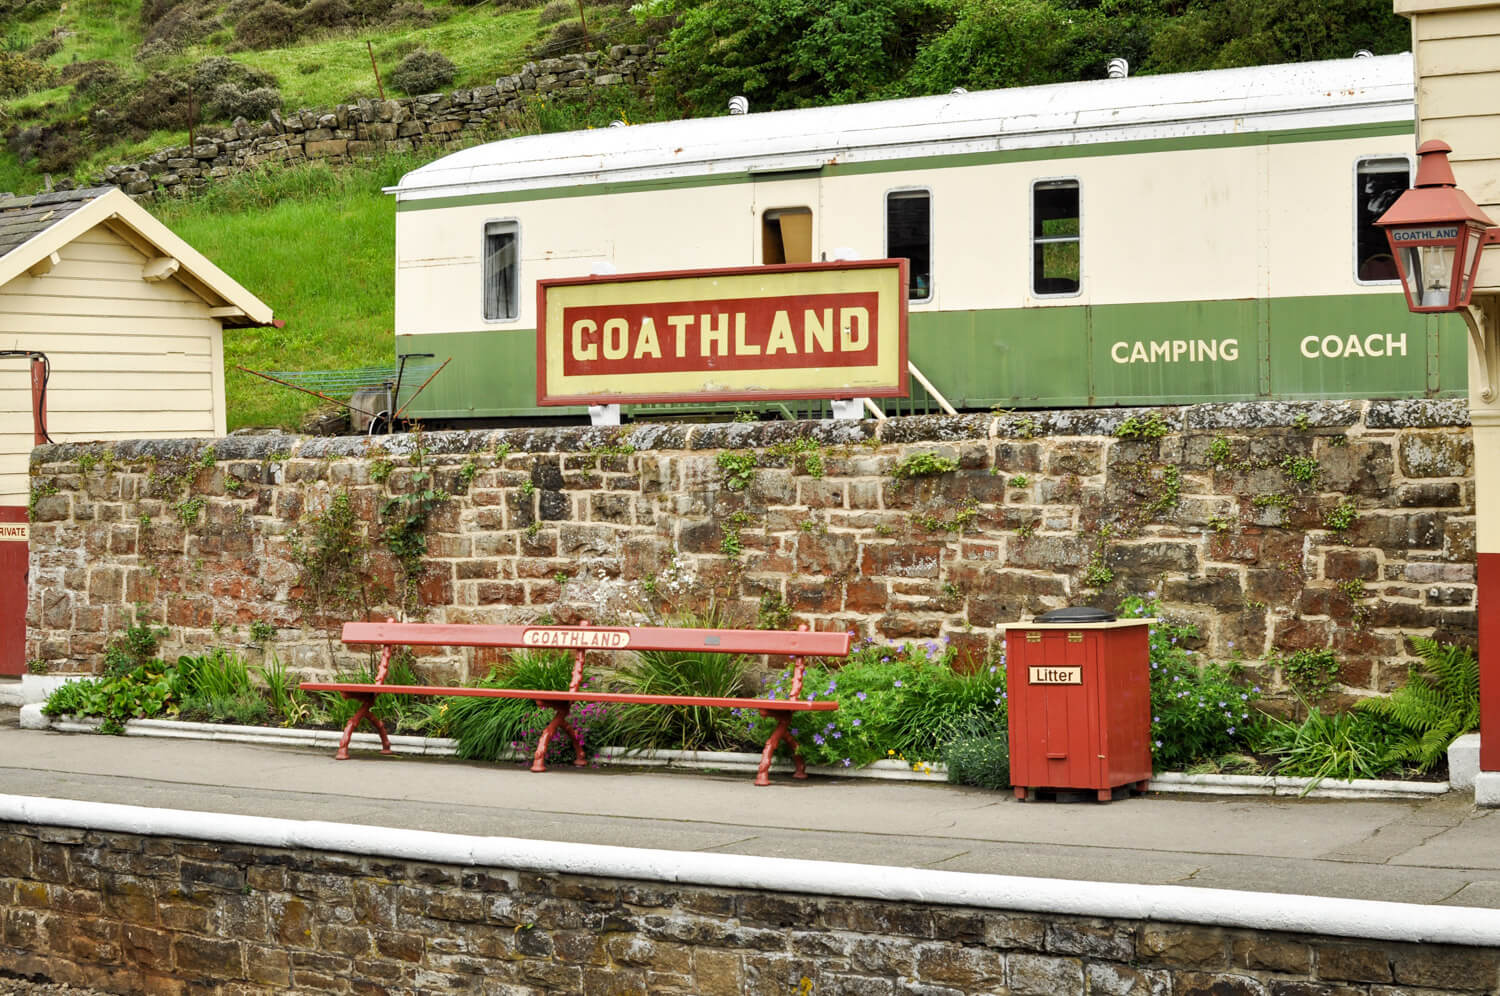 Harry Potter movie locations - Goathland - JRMI